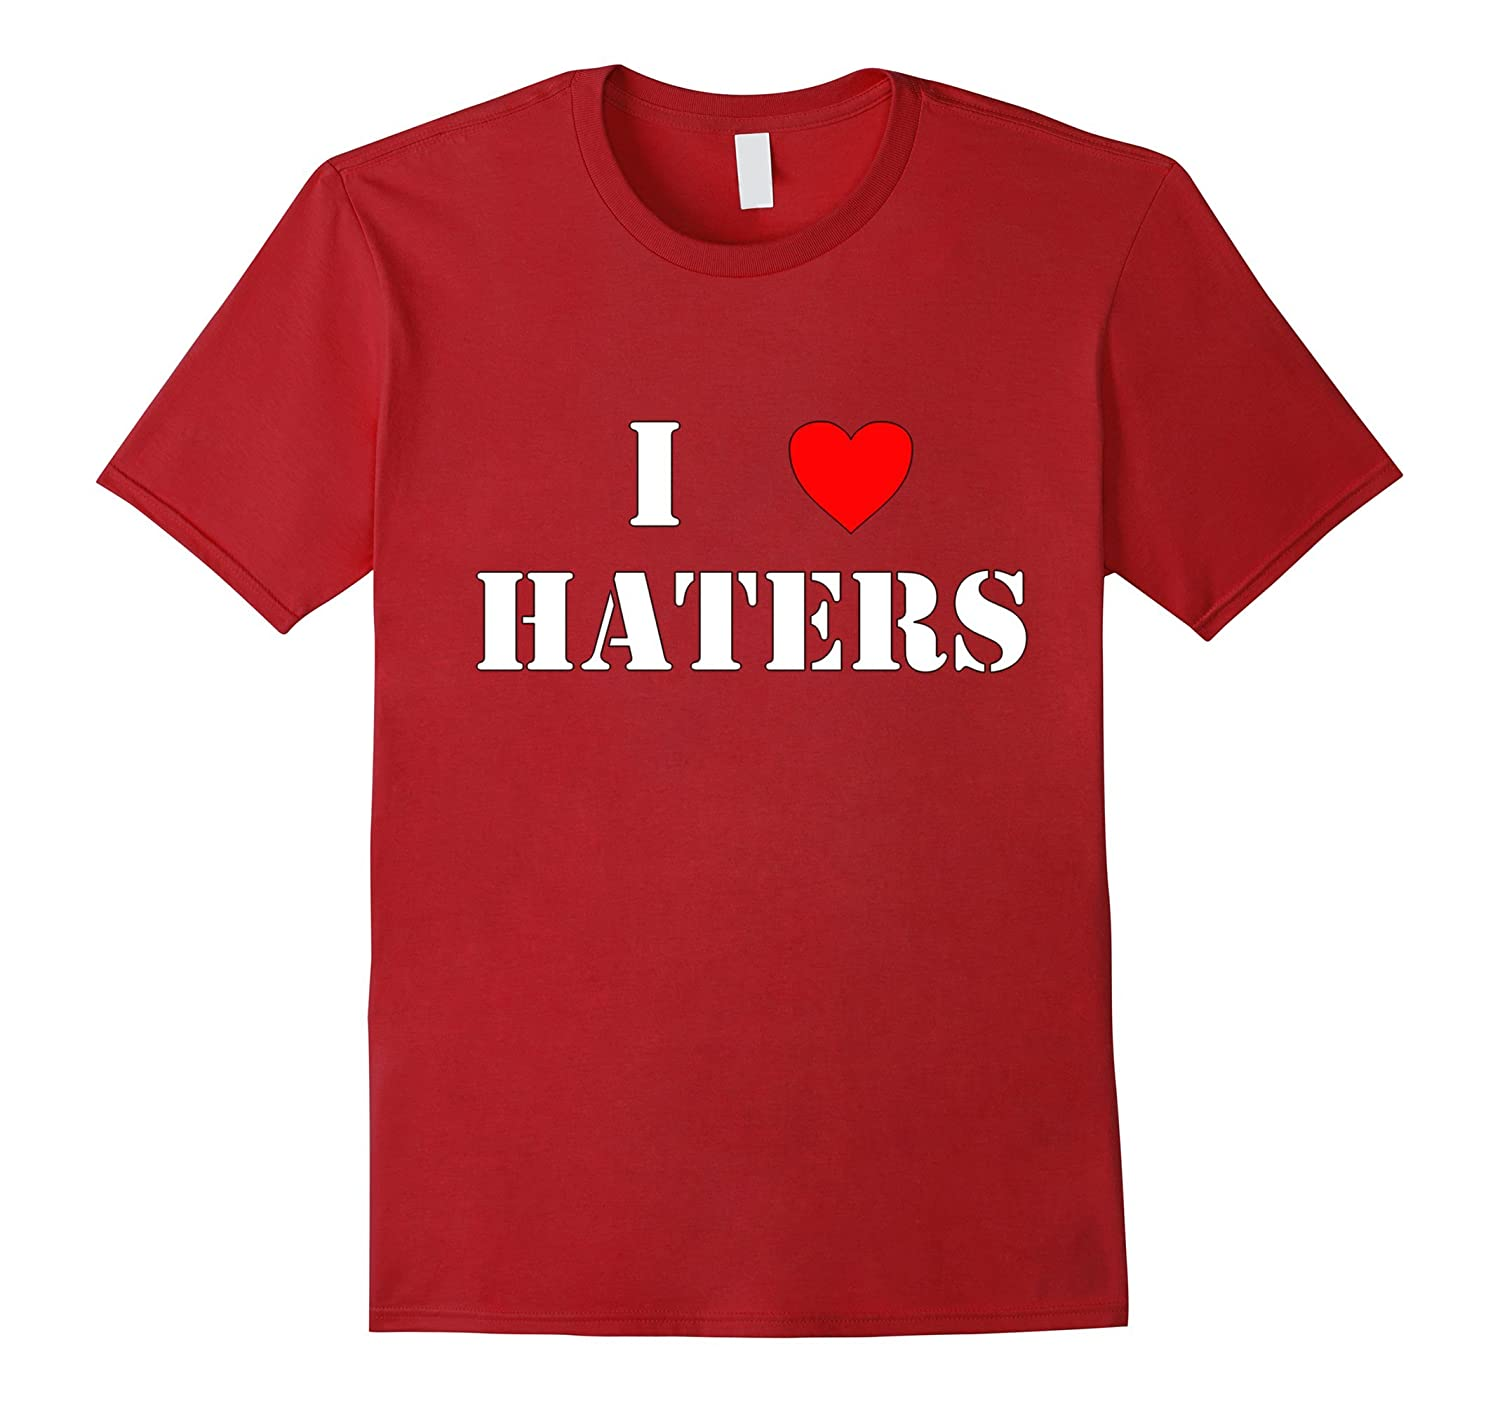 I Heart Haters Shirt, I Love Haters Shirt-T-Shirt